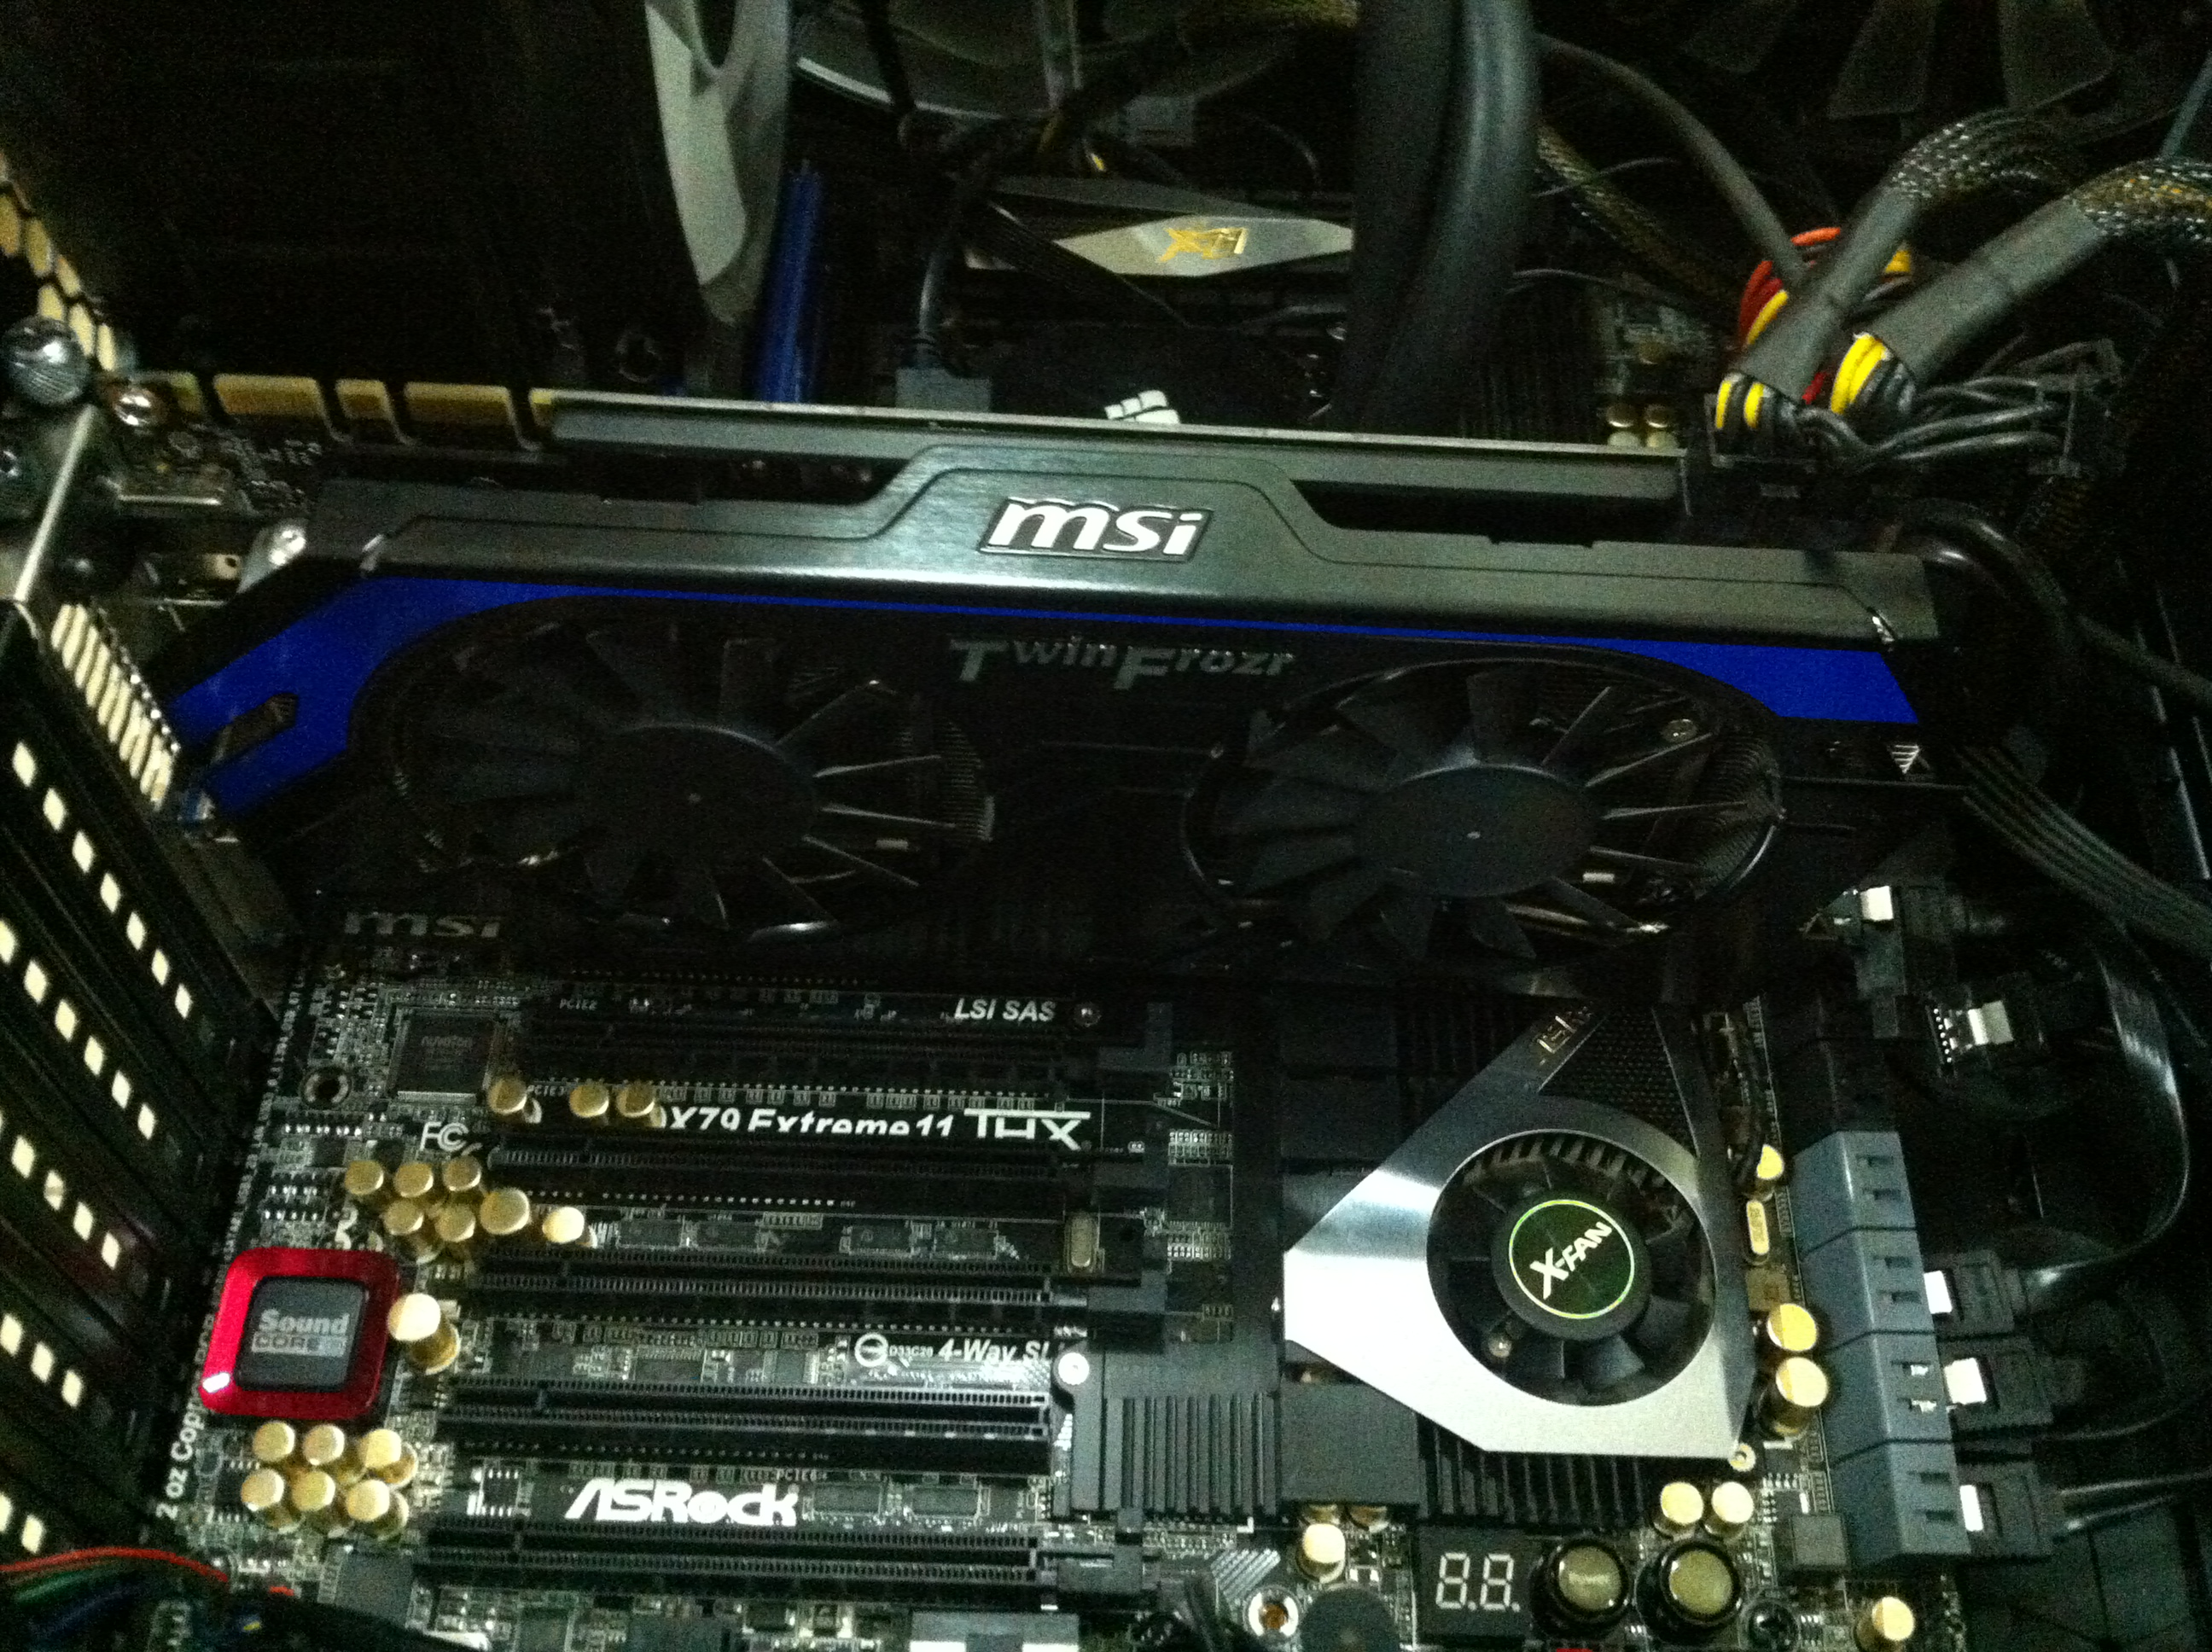 Picture of Video Card PCI Express 3.0 Instalation